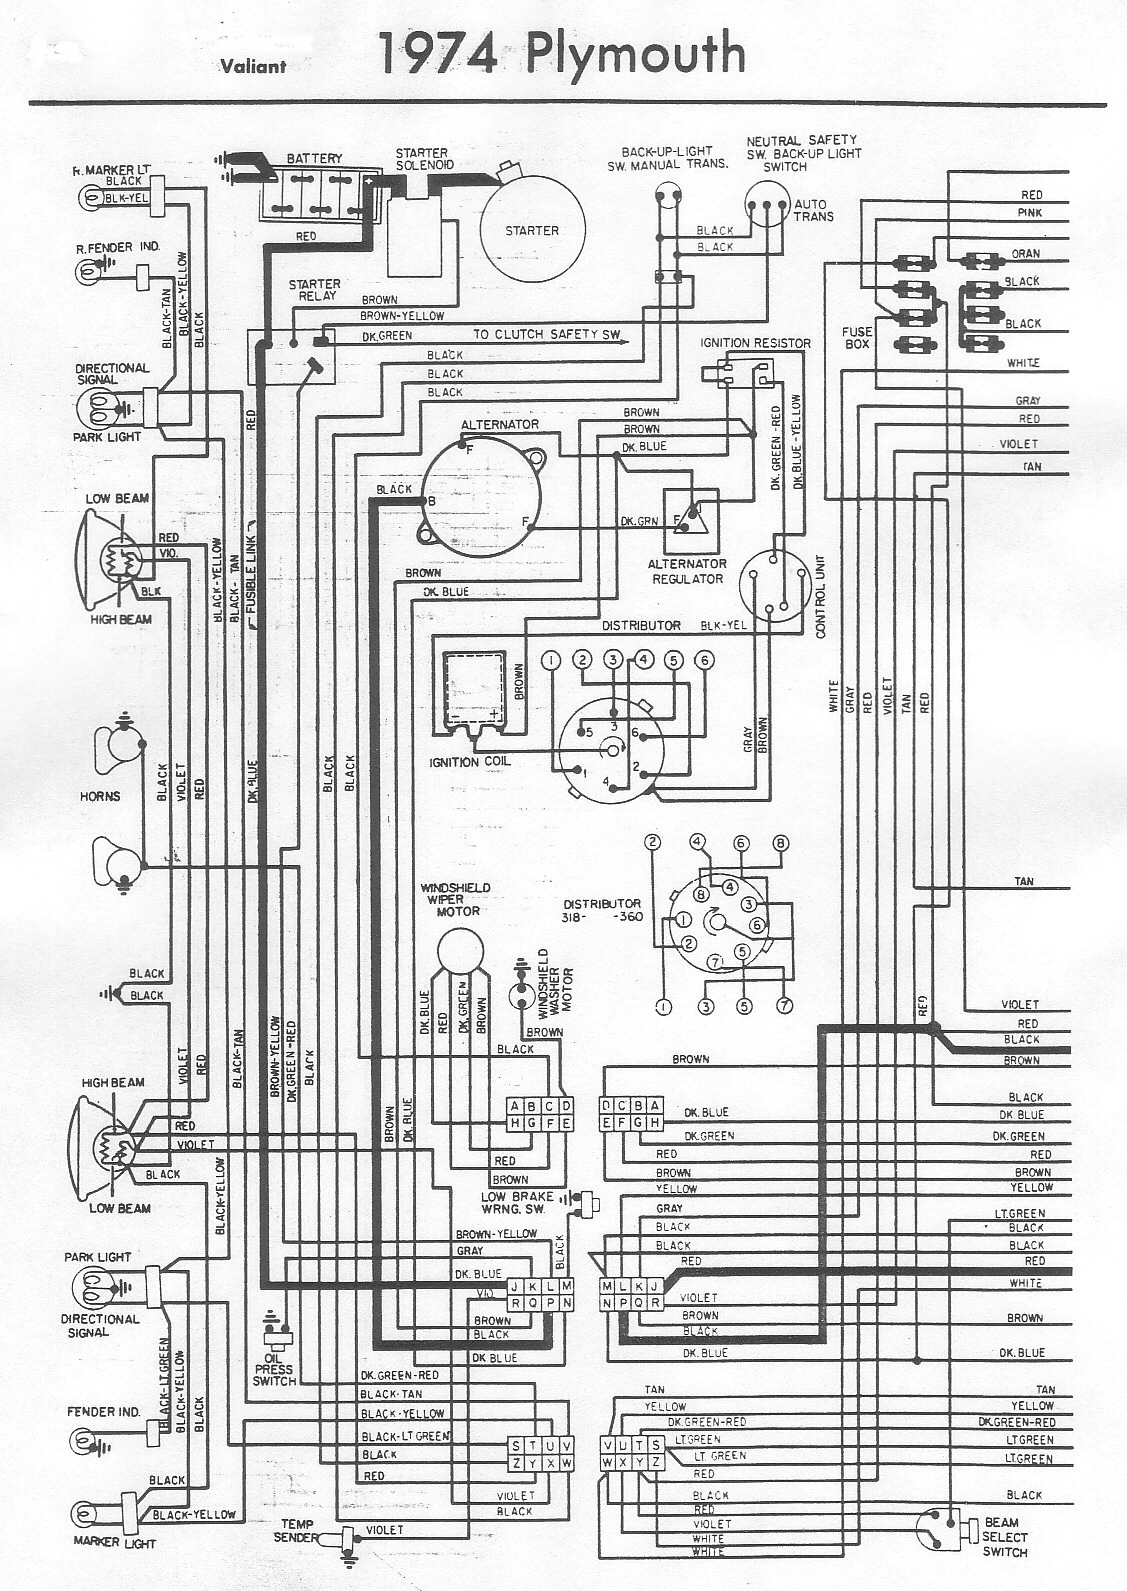 1974 Plymouth Valiant Wiring Diagram Guide And Troubleshooting Of Vw Beetle Engine Voltage Regulator 74 Duster Todays Rh 6 16 10 1813weddingbarn Com 1969